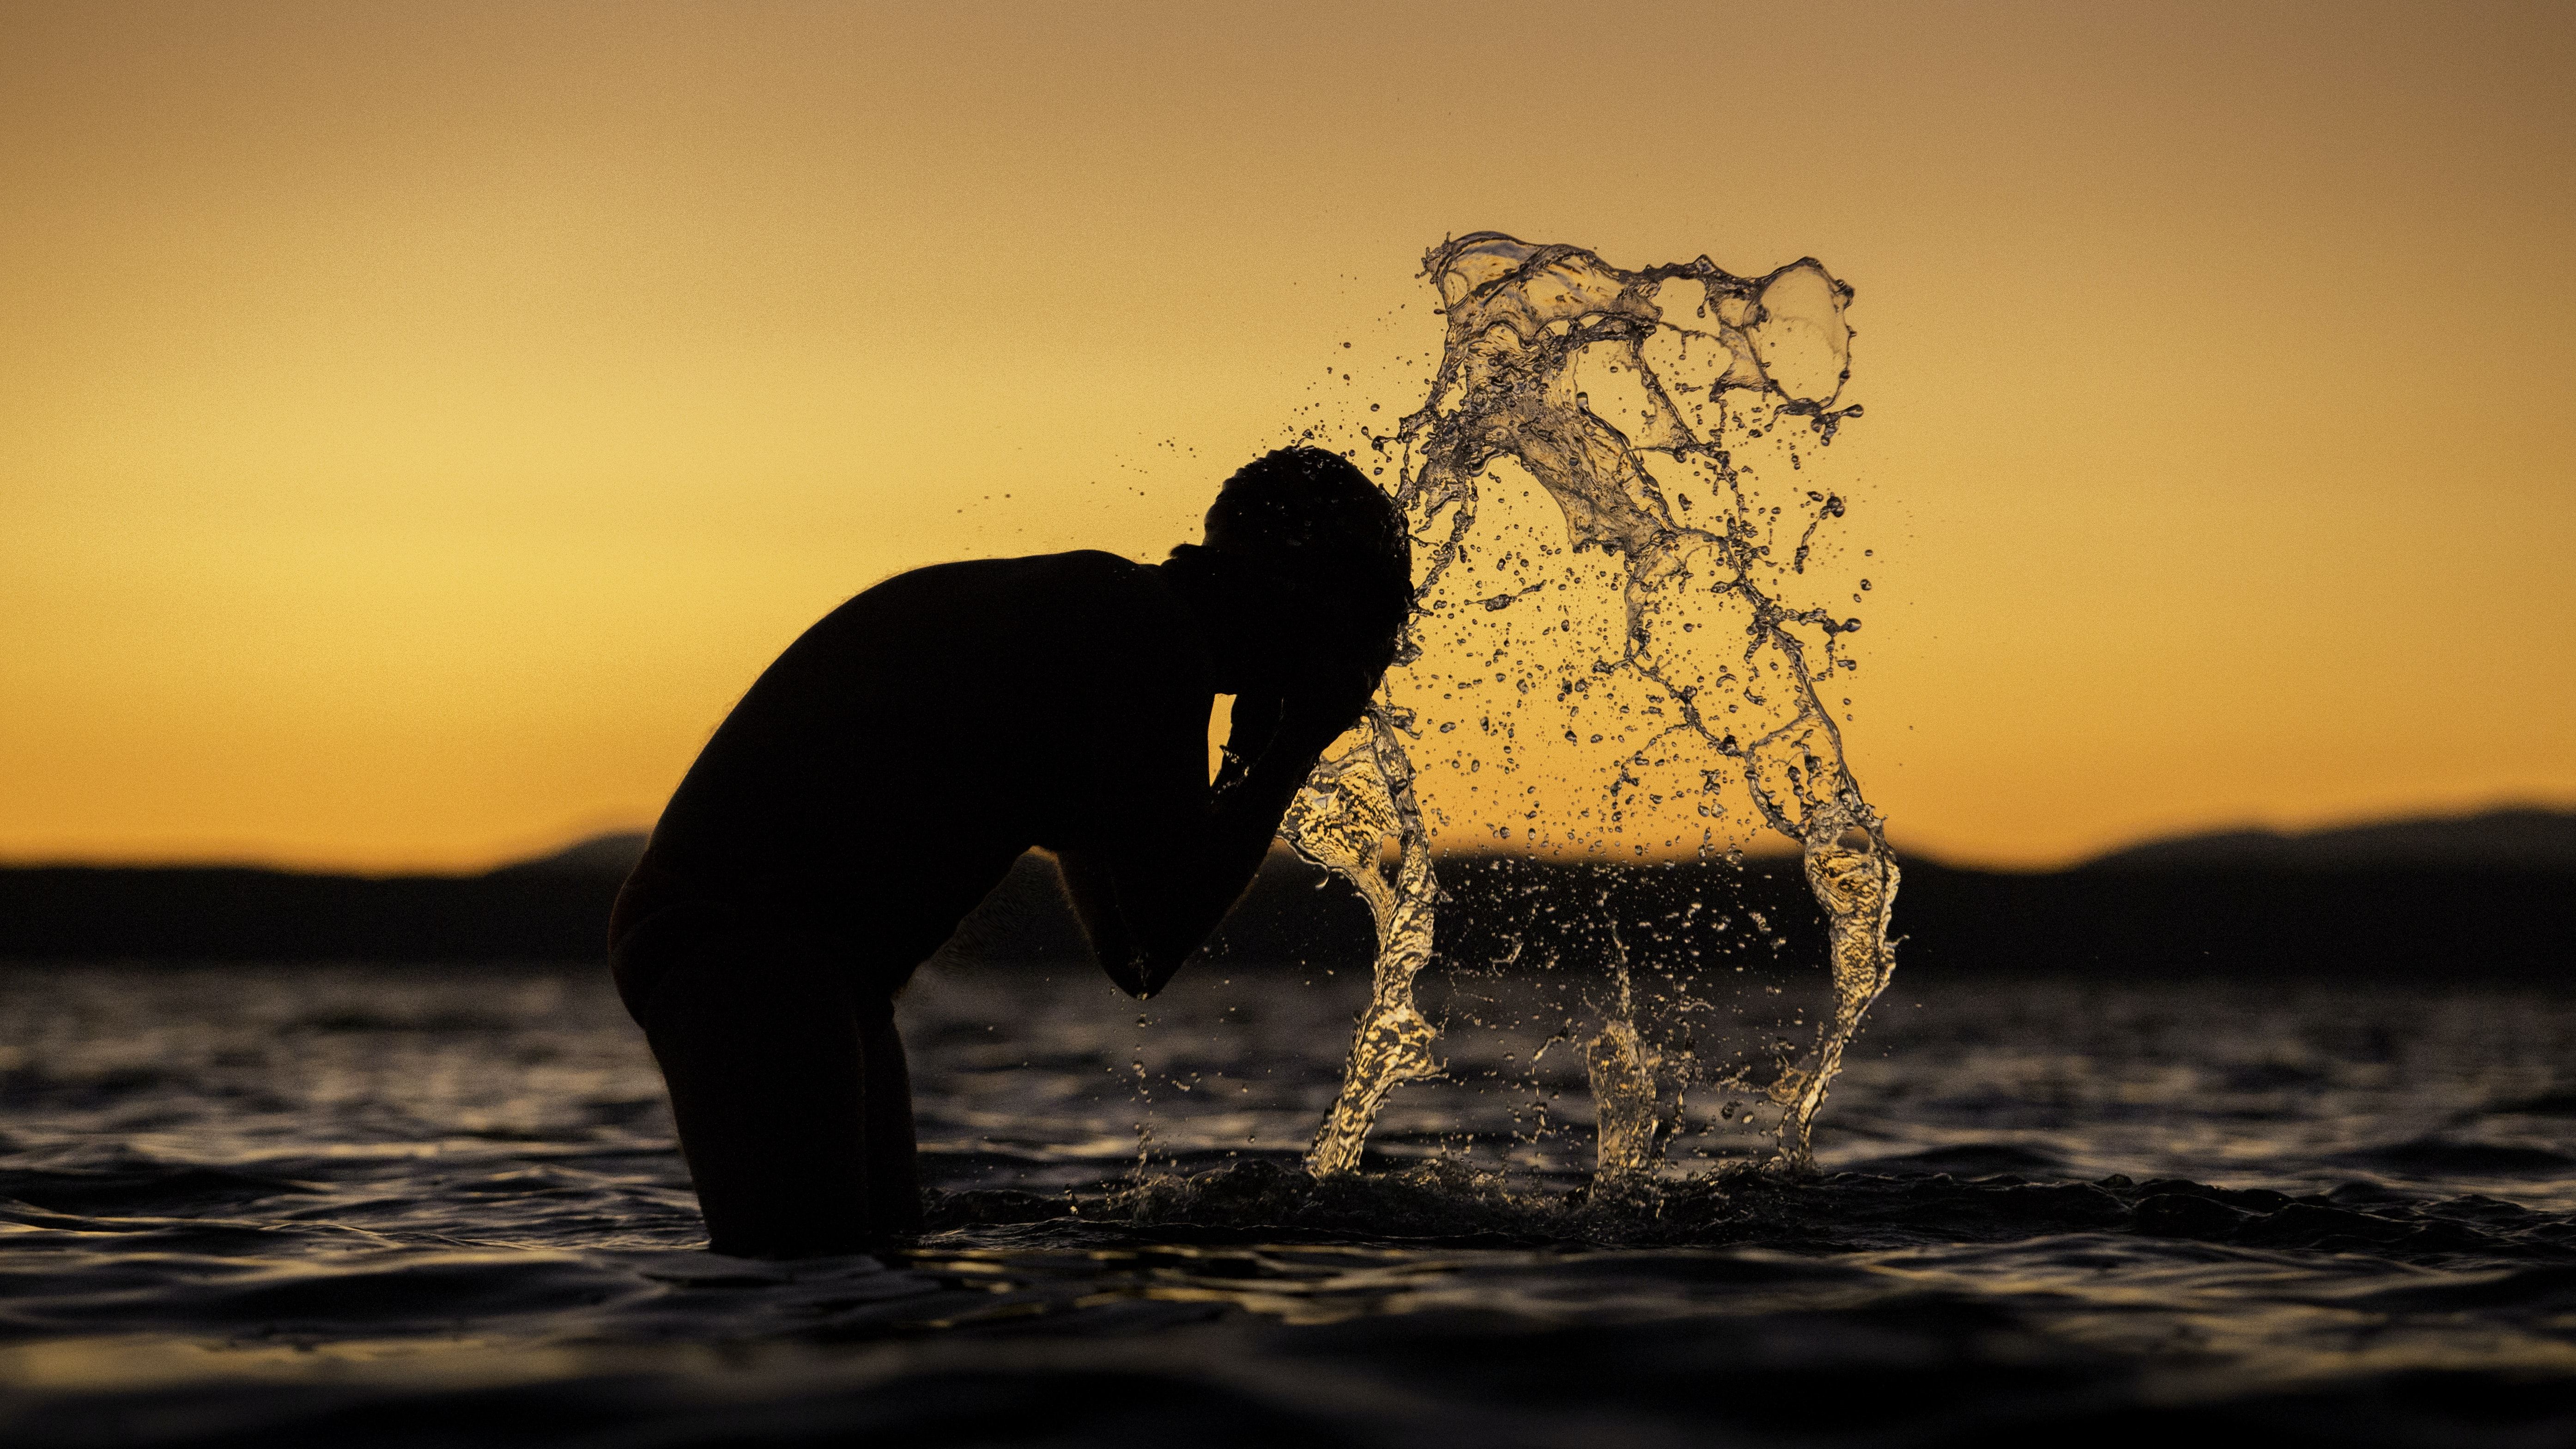 silhouette of man washing his face on body of water